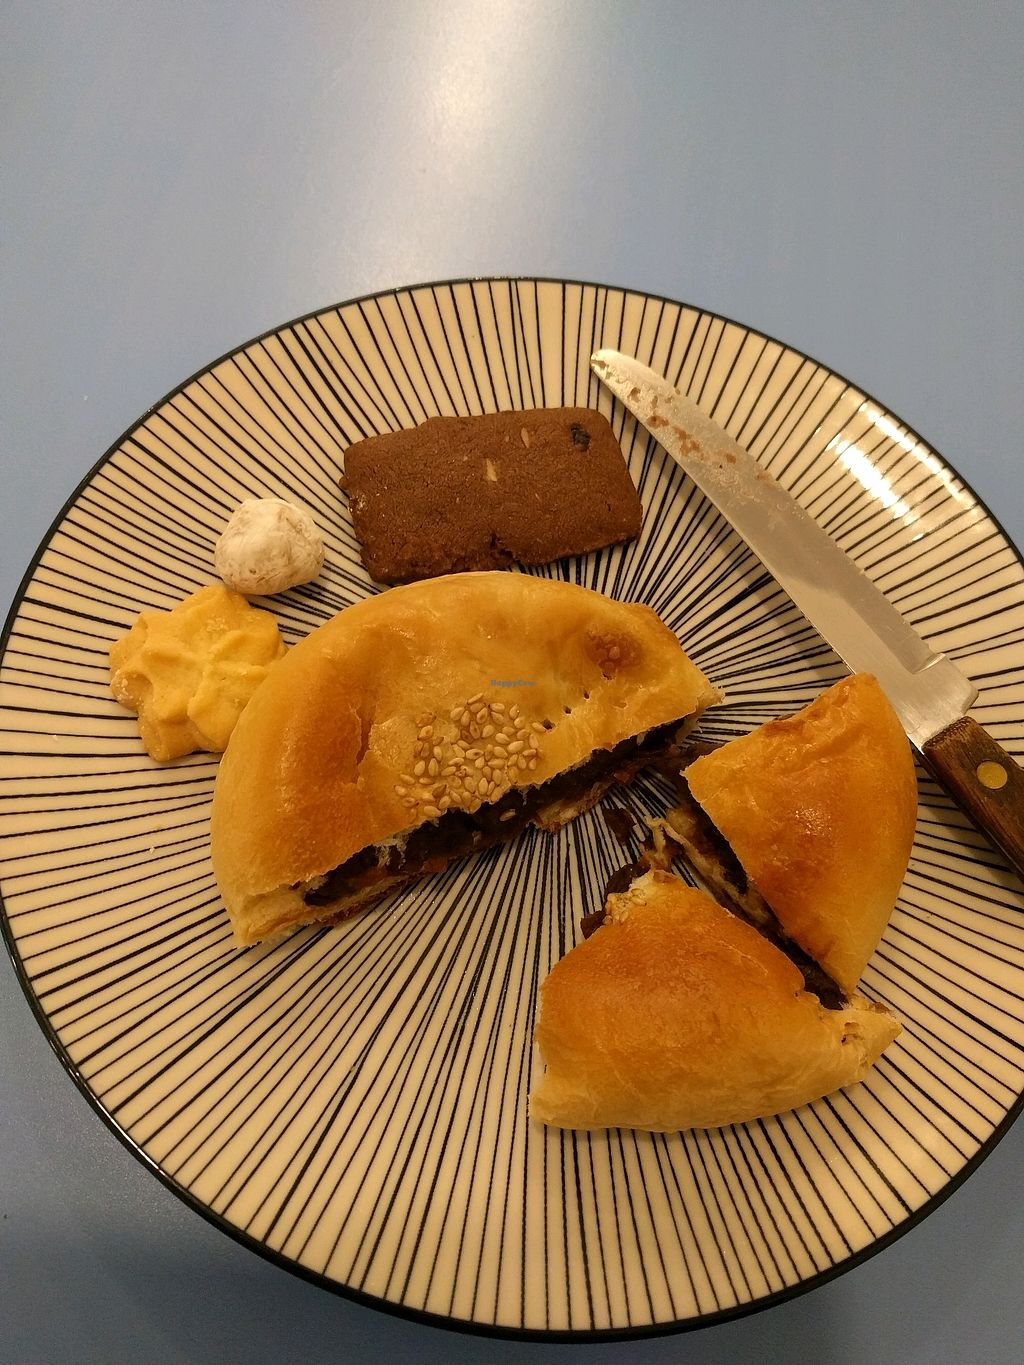 """Photo of Haemil Bakery  by <a href=""""/members/profile/alisahimsa"""">alisahimsa</a> <br/>Red bean bread and cookies  <br/> February 13, 2018  - <a href='/contact/abuse/image/74914/358752'>Report</a>"""